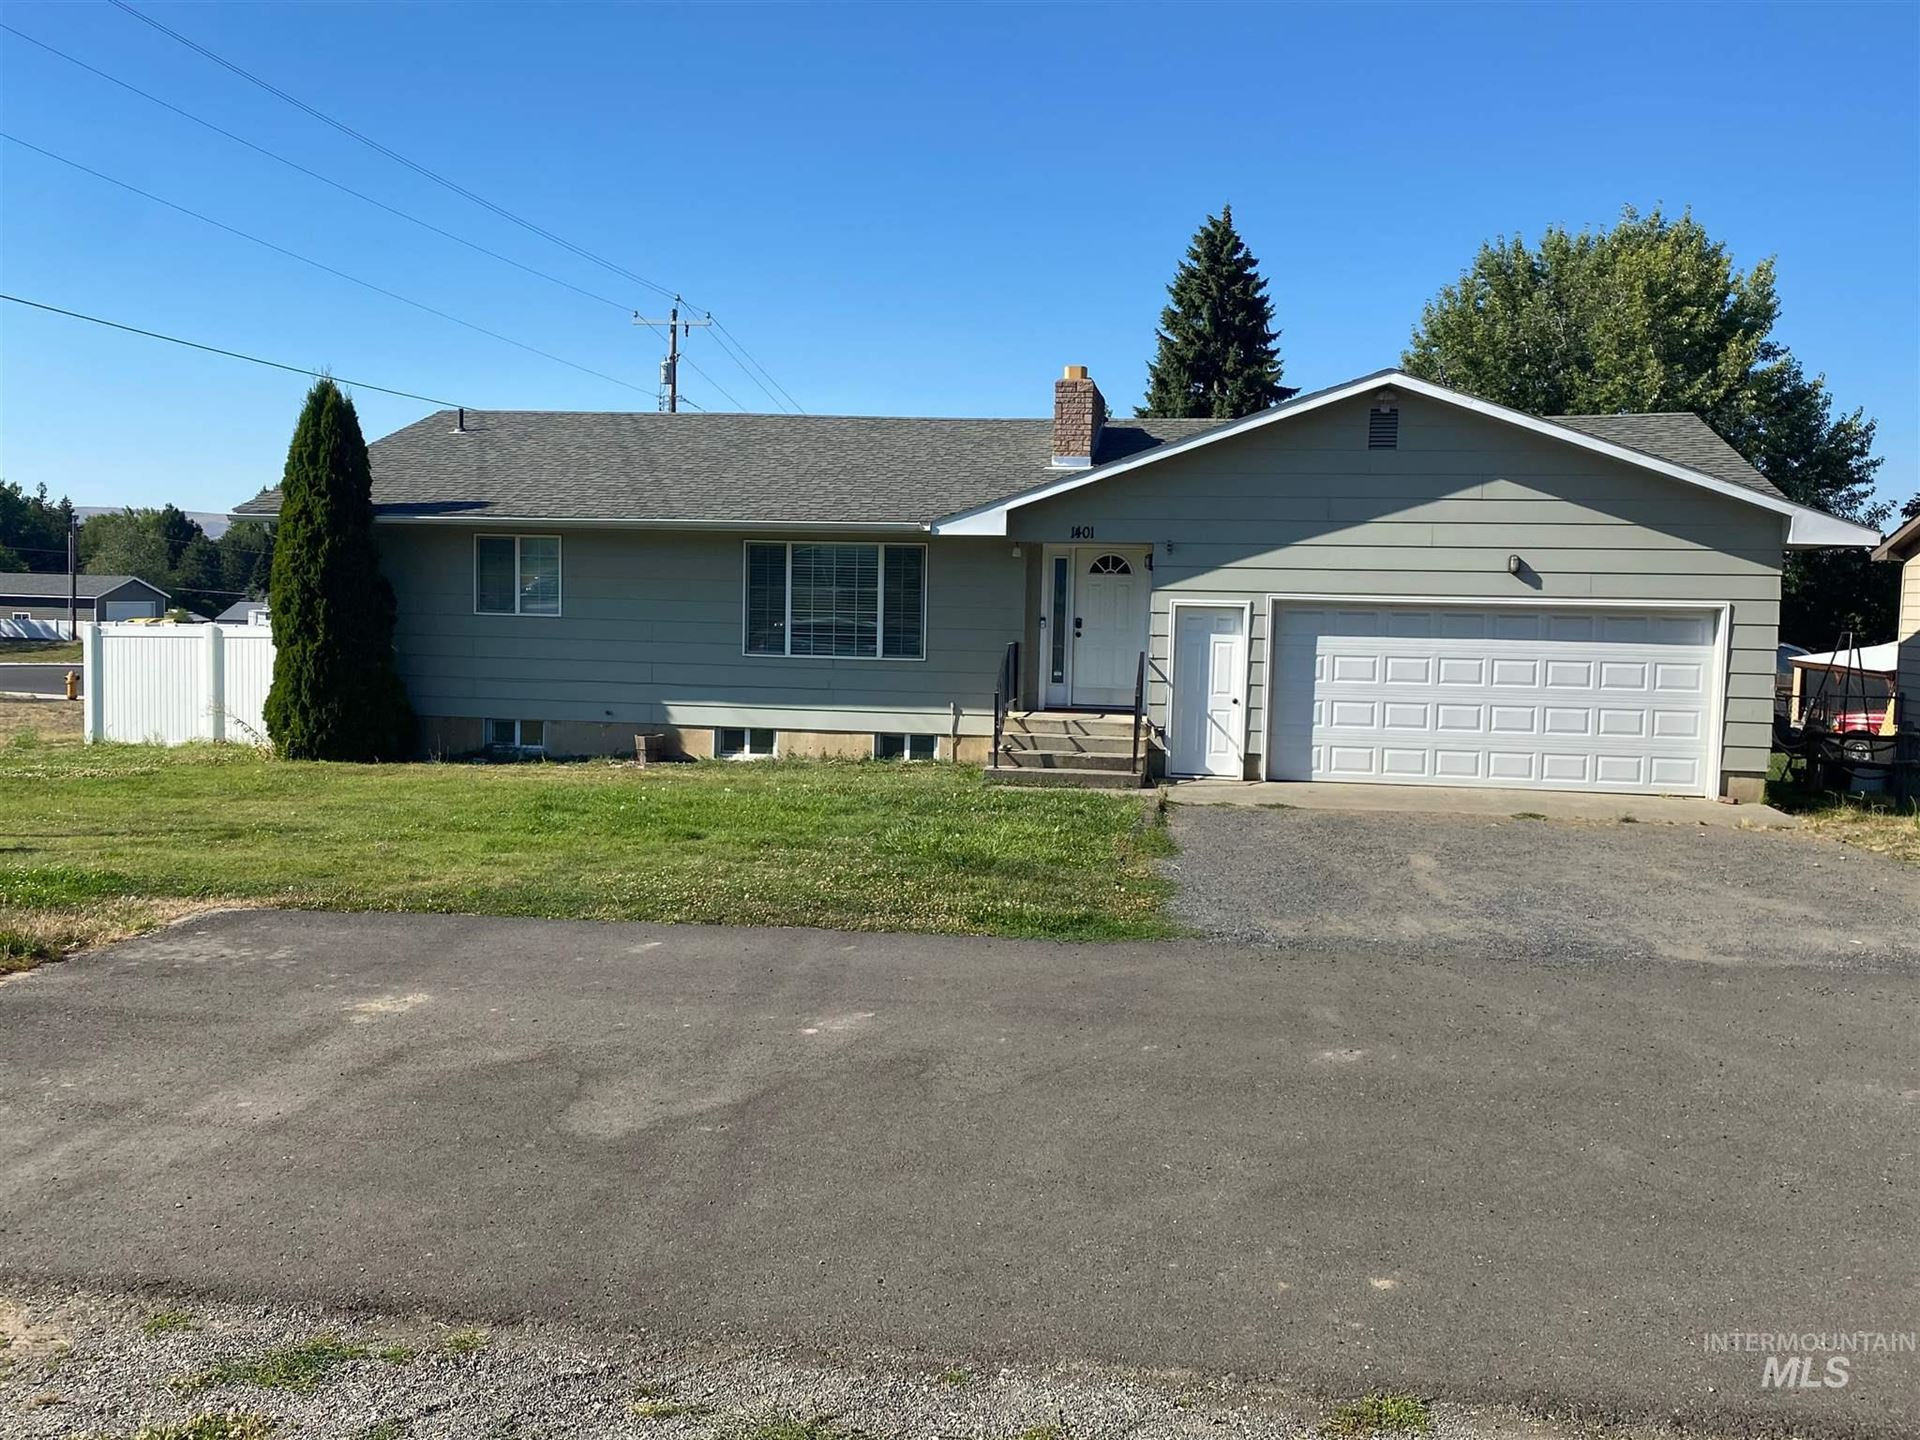 1401 Powers Ave, Lewiston, ID 83501 - MLS#: 98777026